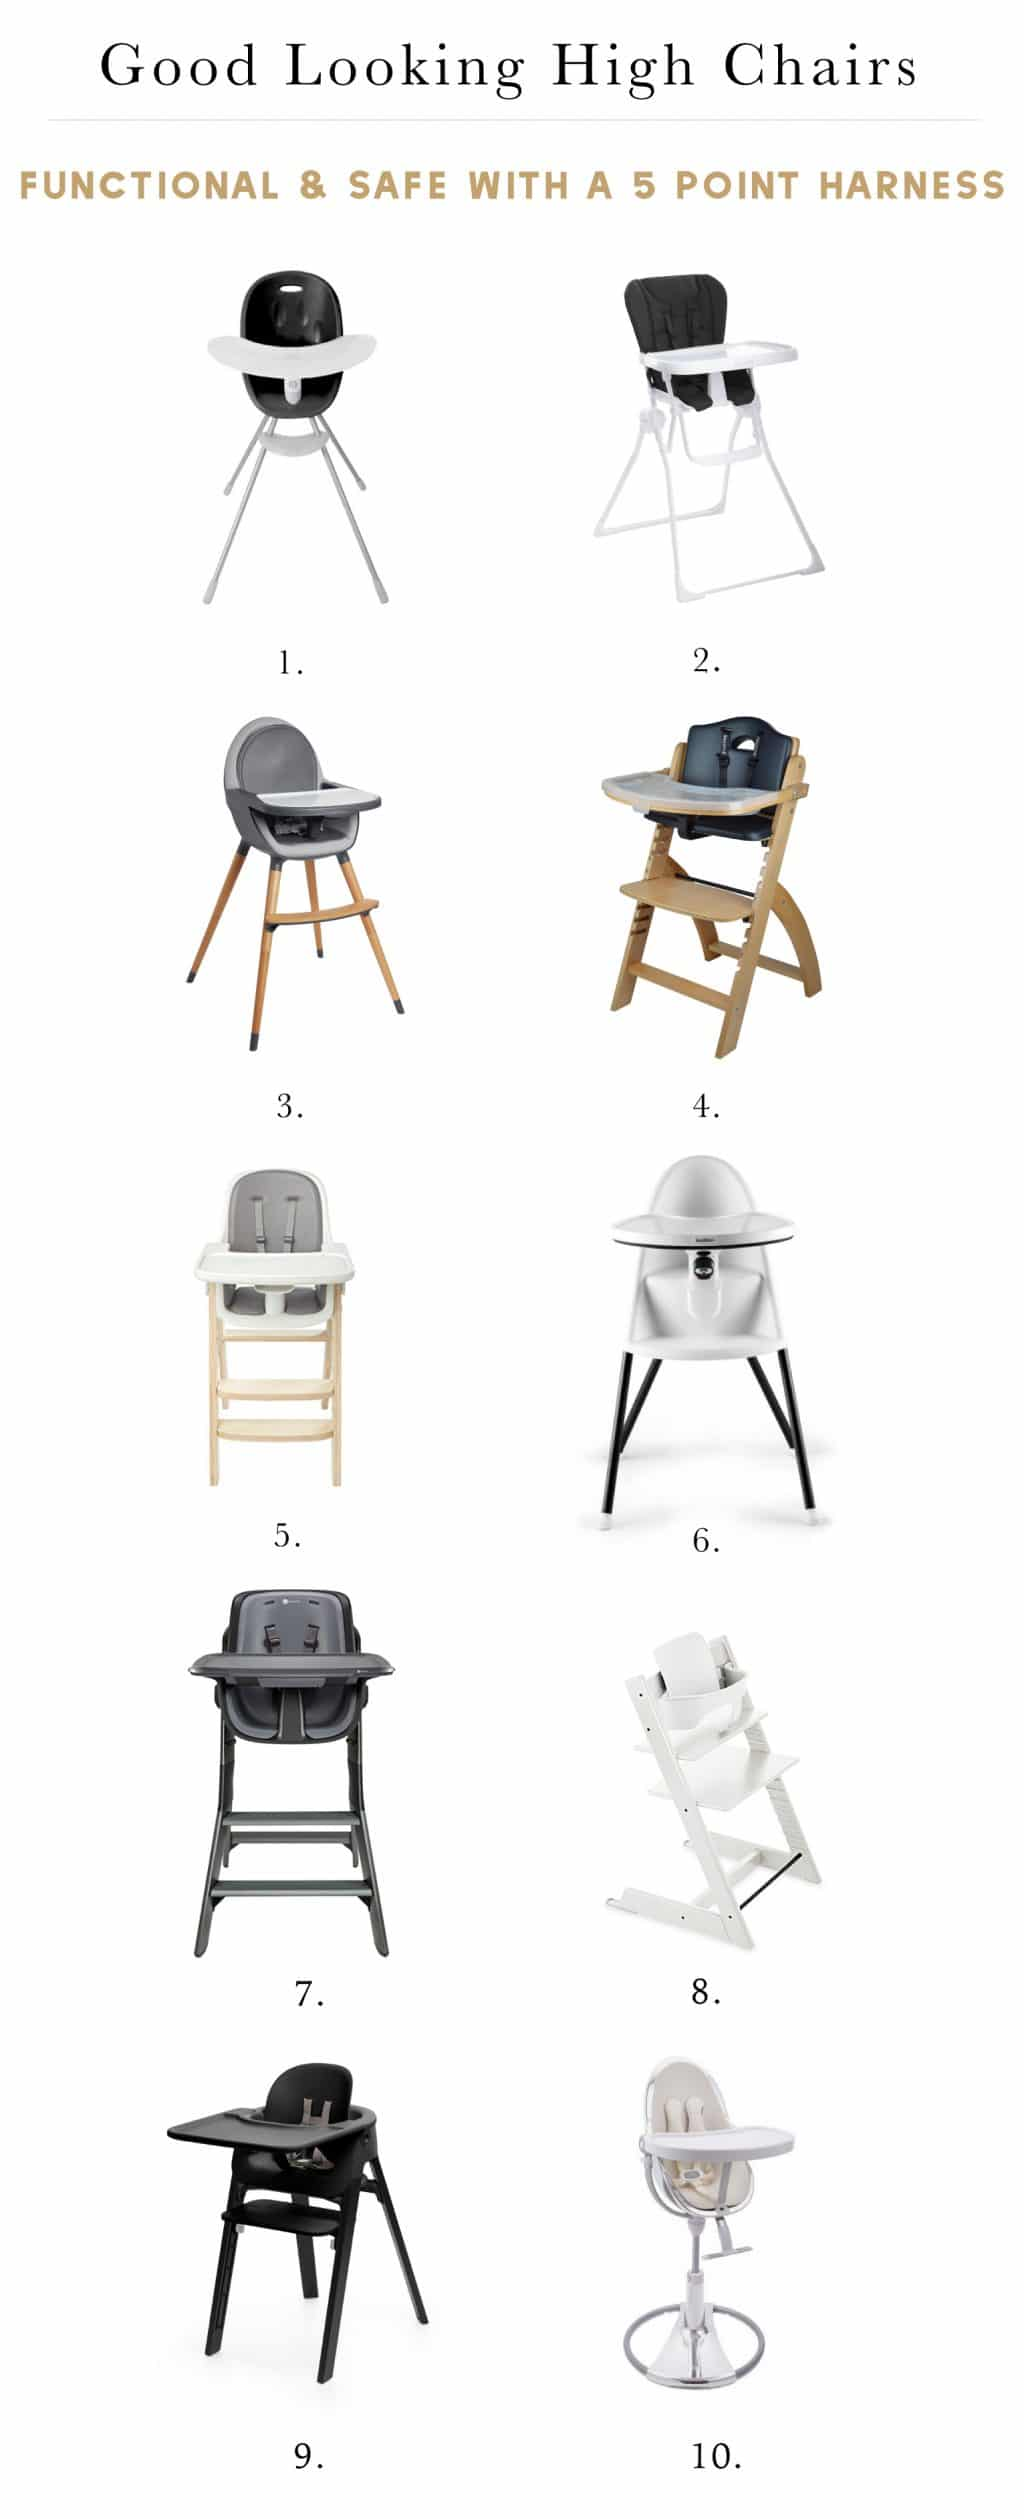 10 Really Good Looking High Chairs That Are Also Safe And Functional And Convertible